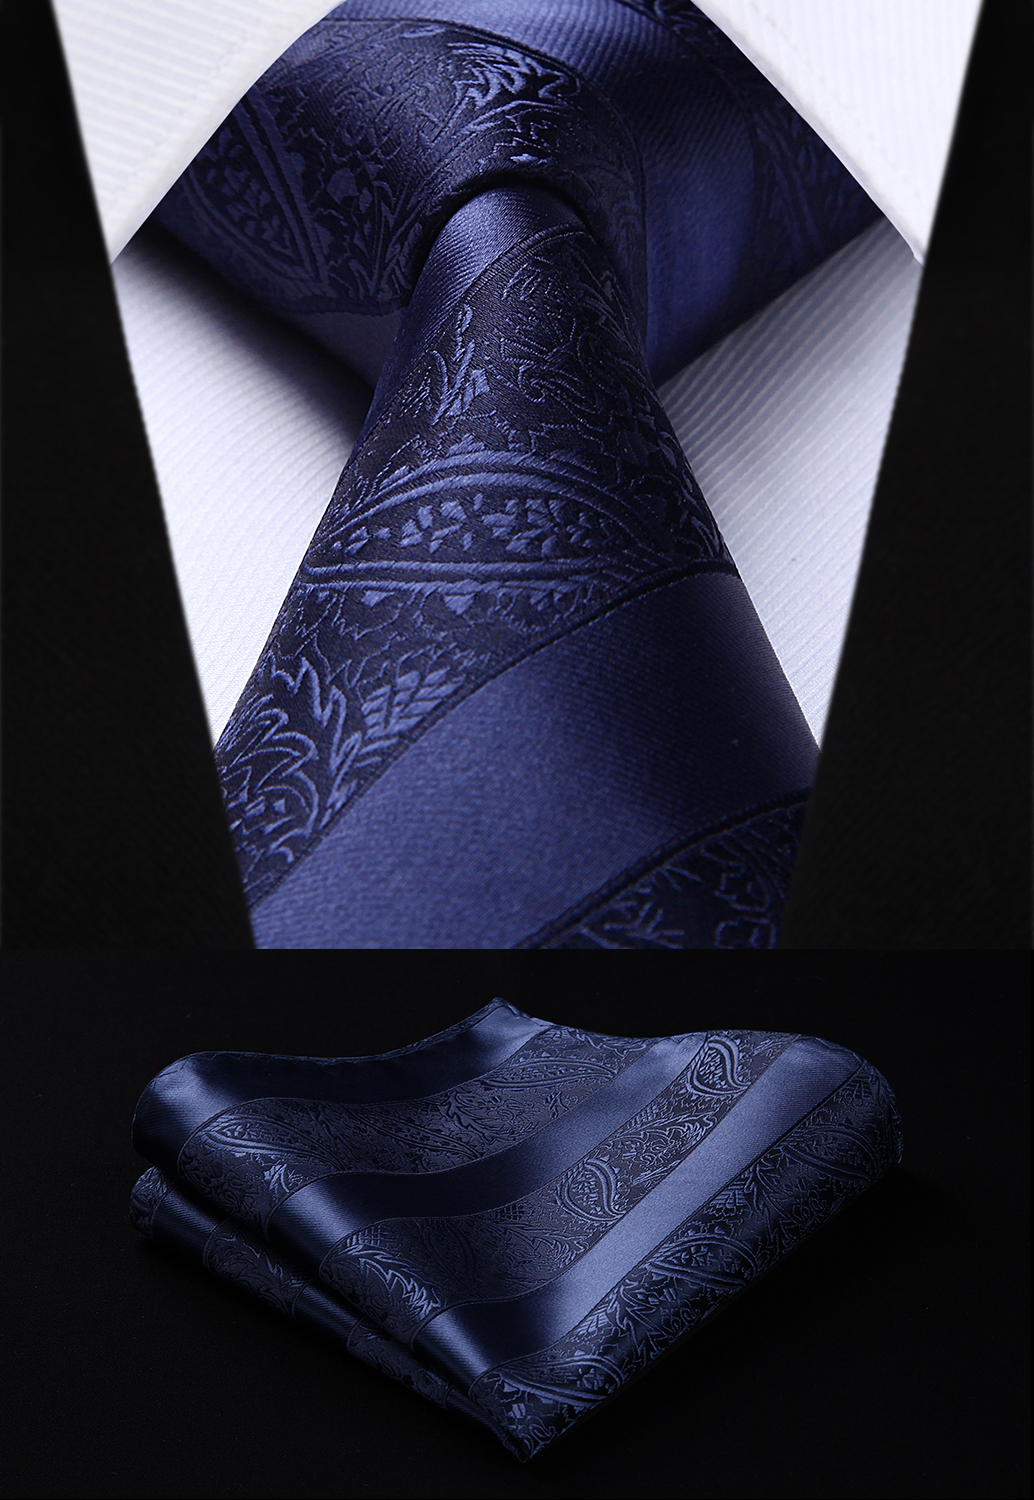 Party Wedding Classic Fashion Pocket Square Tie Woven Men Navy Blue Tie Paisley Necktie Handkerchief Set#TP804V8S